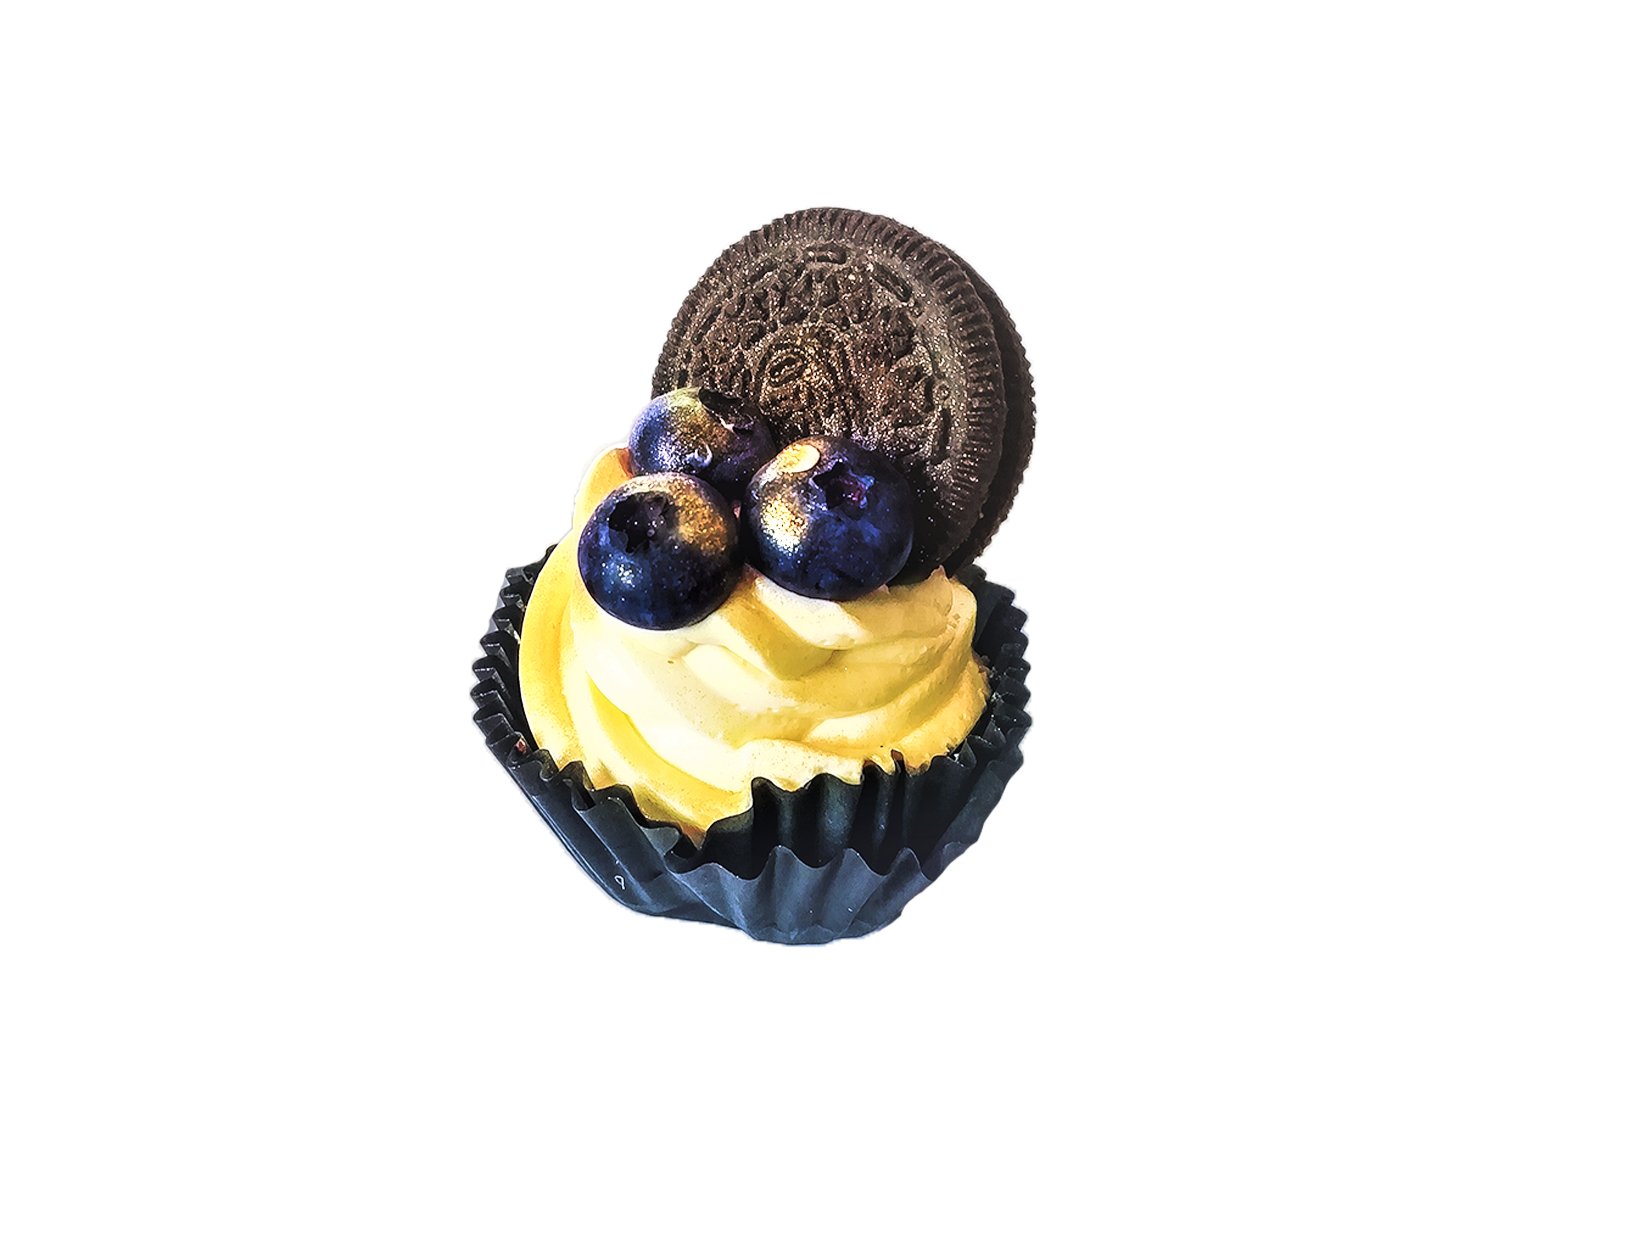 Chocolate Muffin with Blueberries